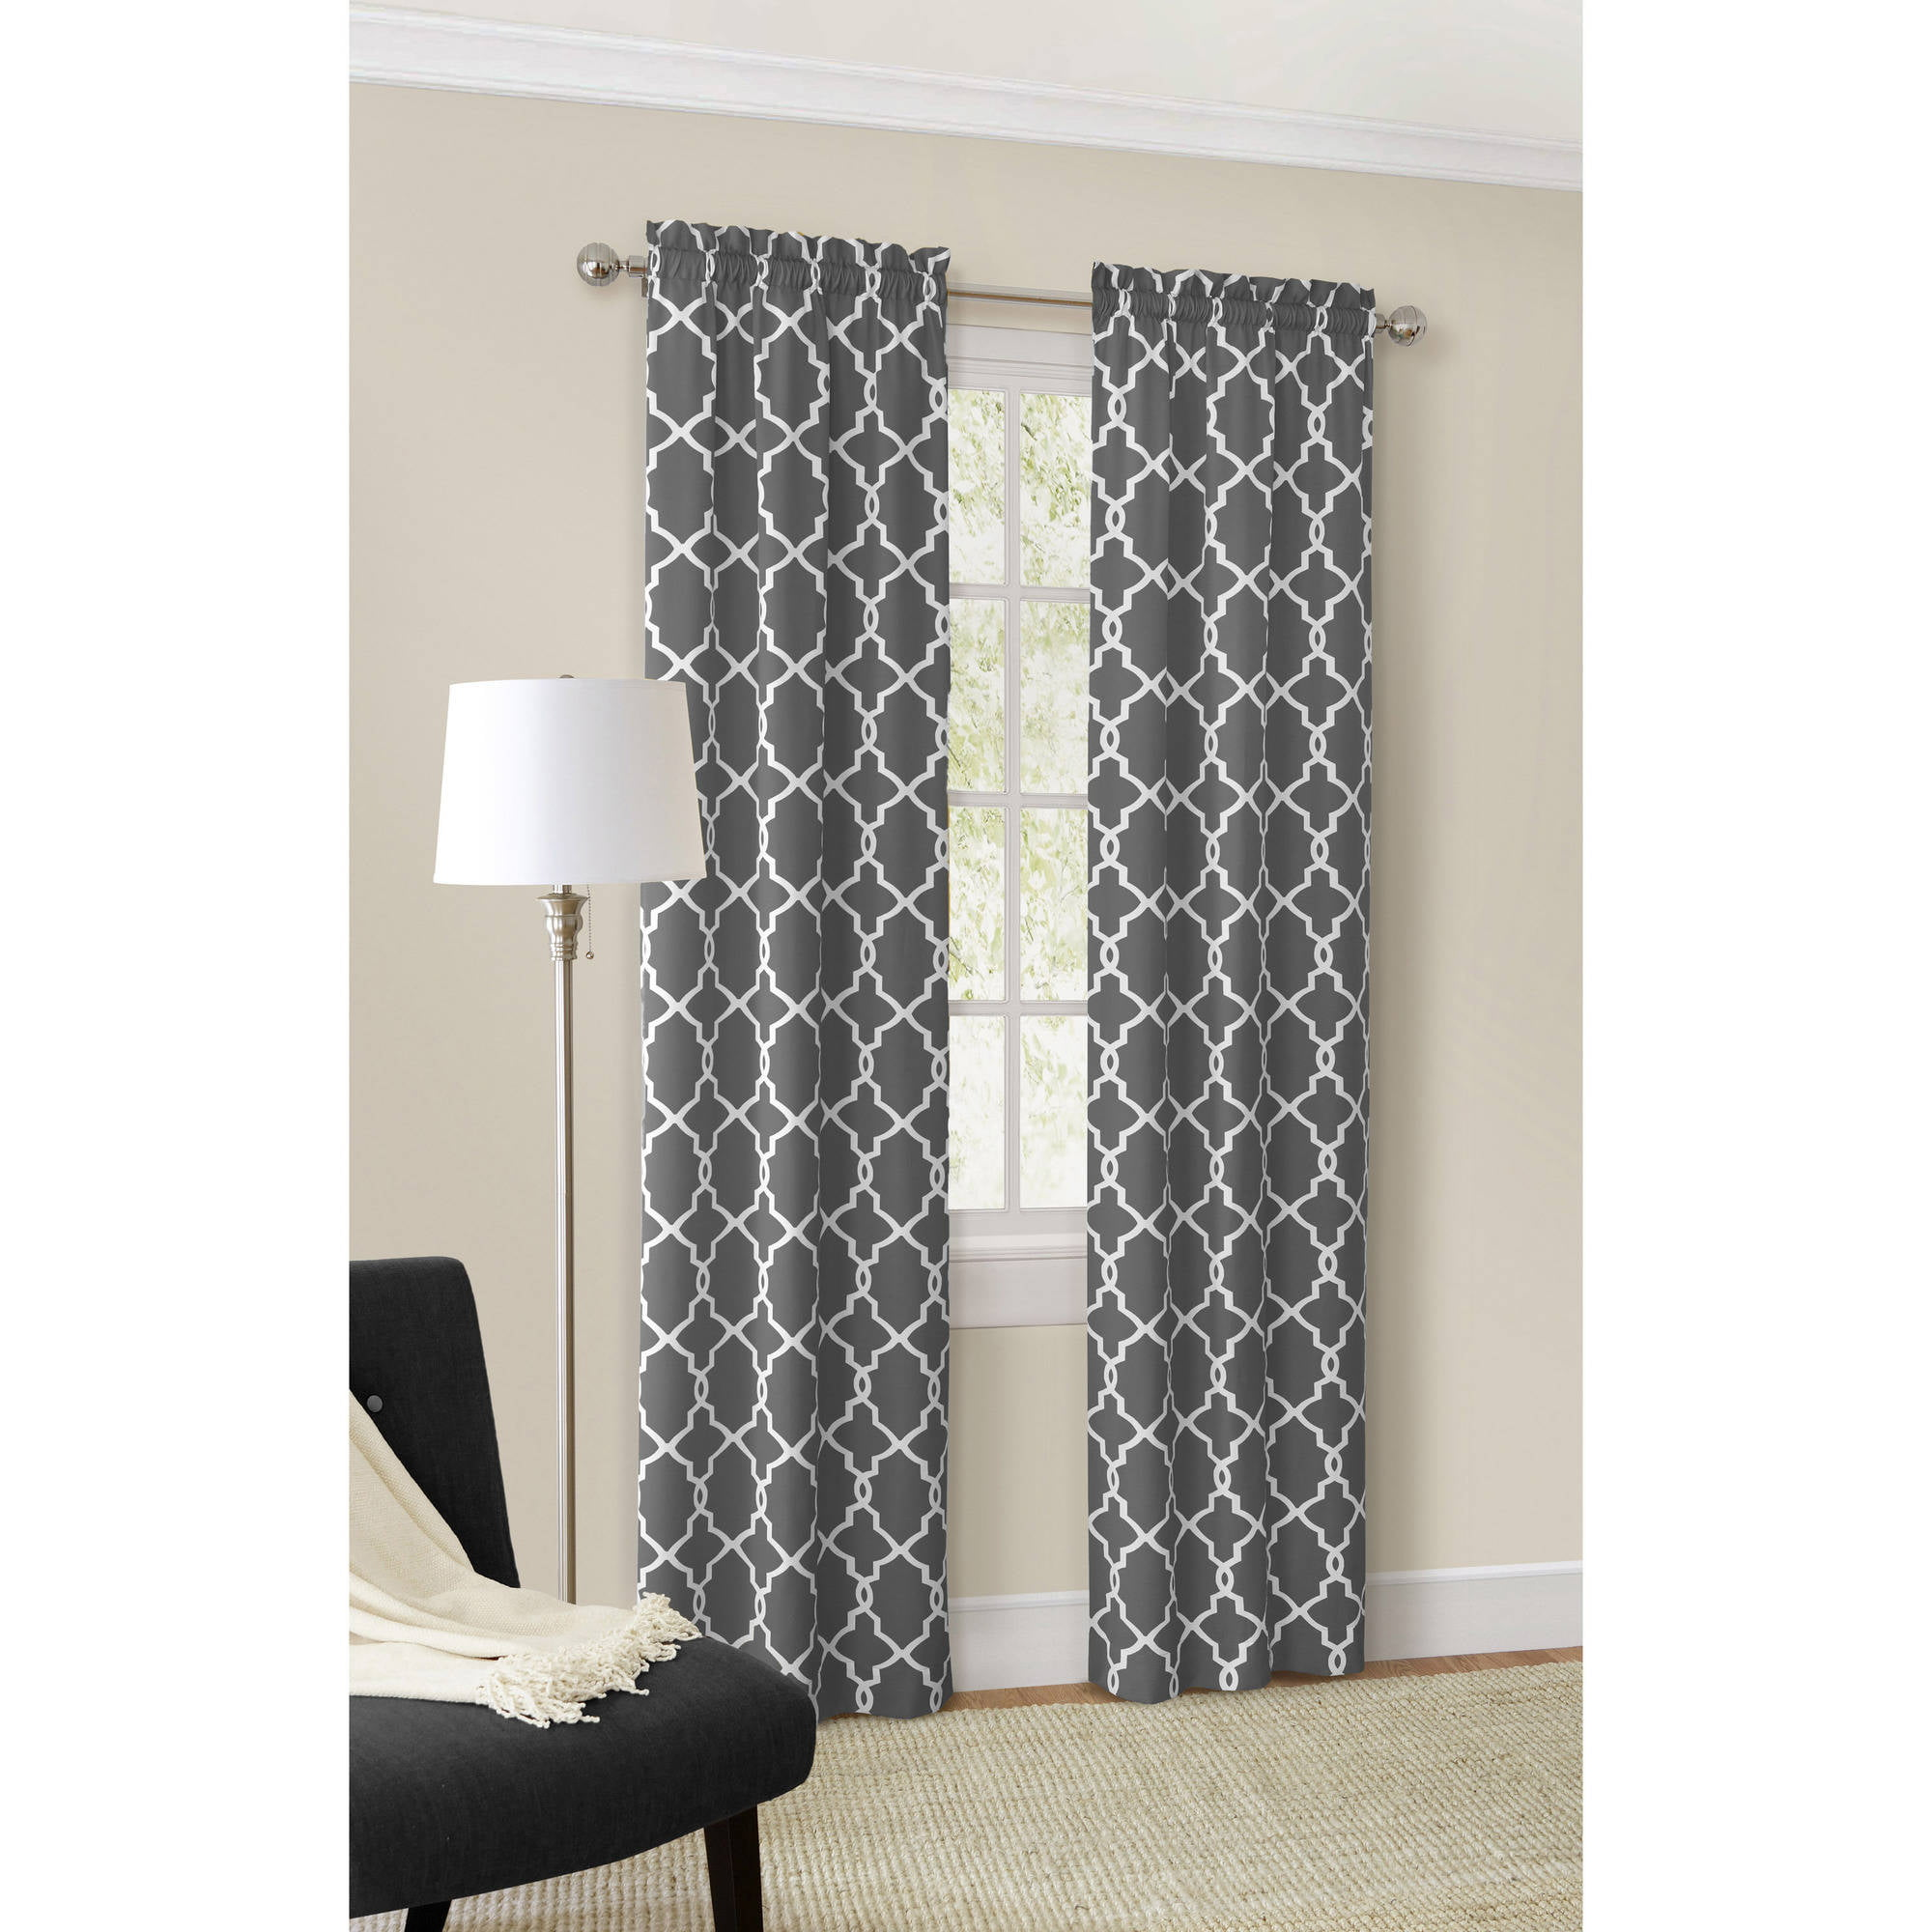 designs scarf sheer drapes pair color home warm dusty of slate dark window come panels curtains ocean grommet affordable top products valances new curtain blue sea with